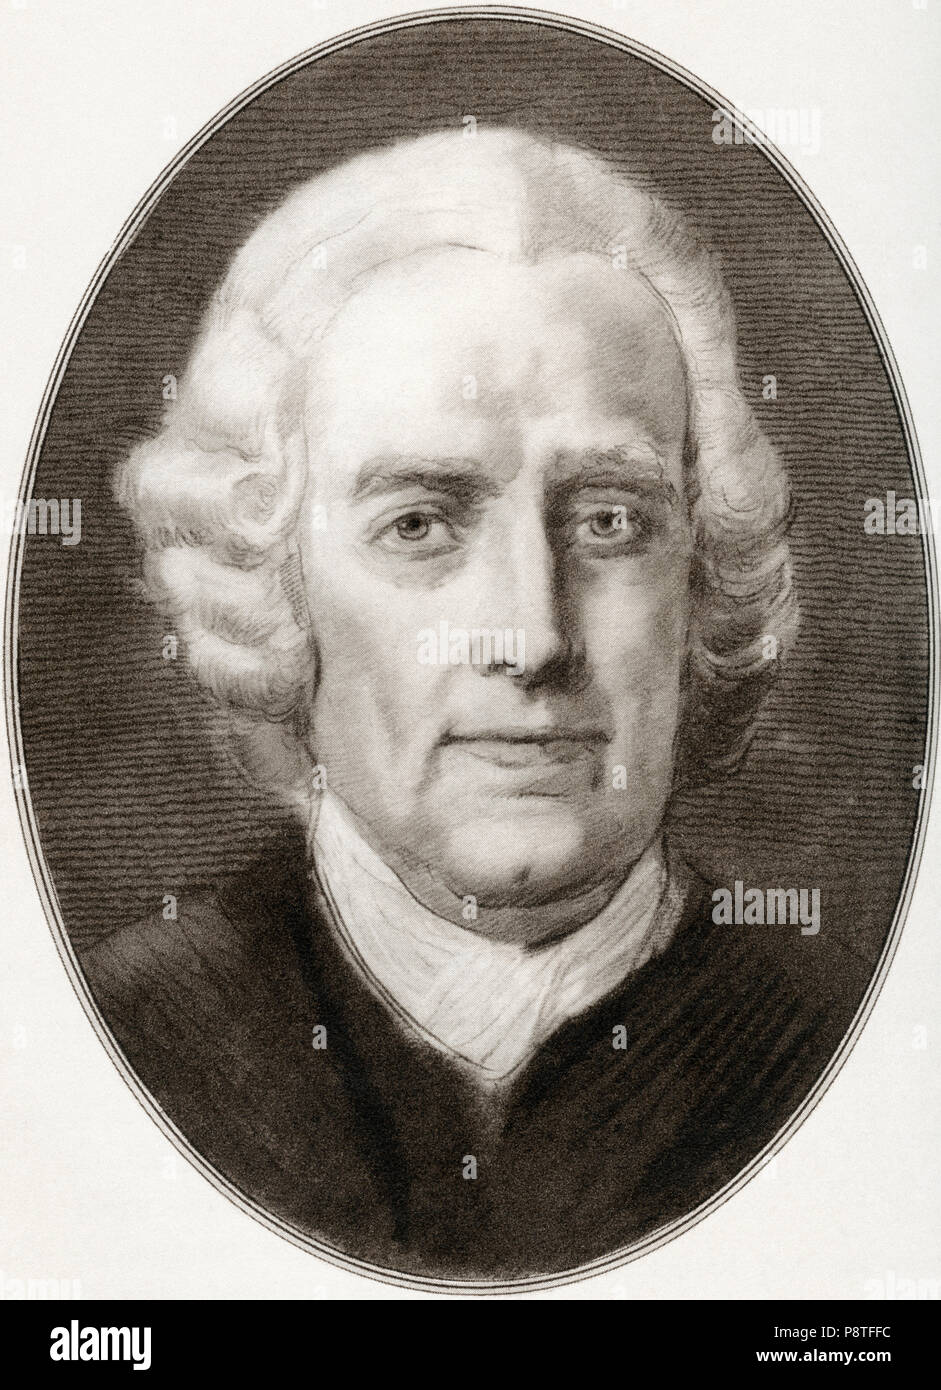 Emanuel Swedenborg, born Emanuel Swedberg, 1688 - 1772.  Swedish Lutheran theologian, scientist, philosopher, revelator and mystic who inspired Swedenborgianism. Illustration by Gordon Ross, American artist and illustrator (1873-1946), from Living Biographies of Religious Leaders. - Stock Image